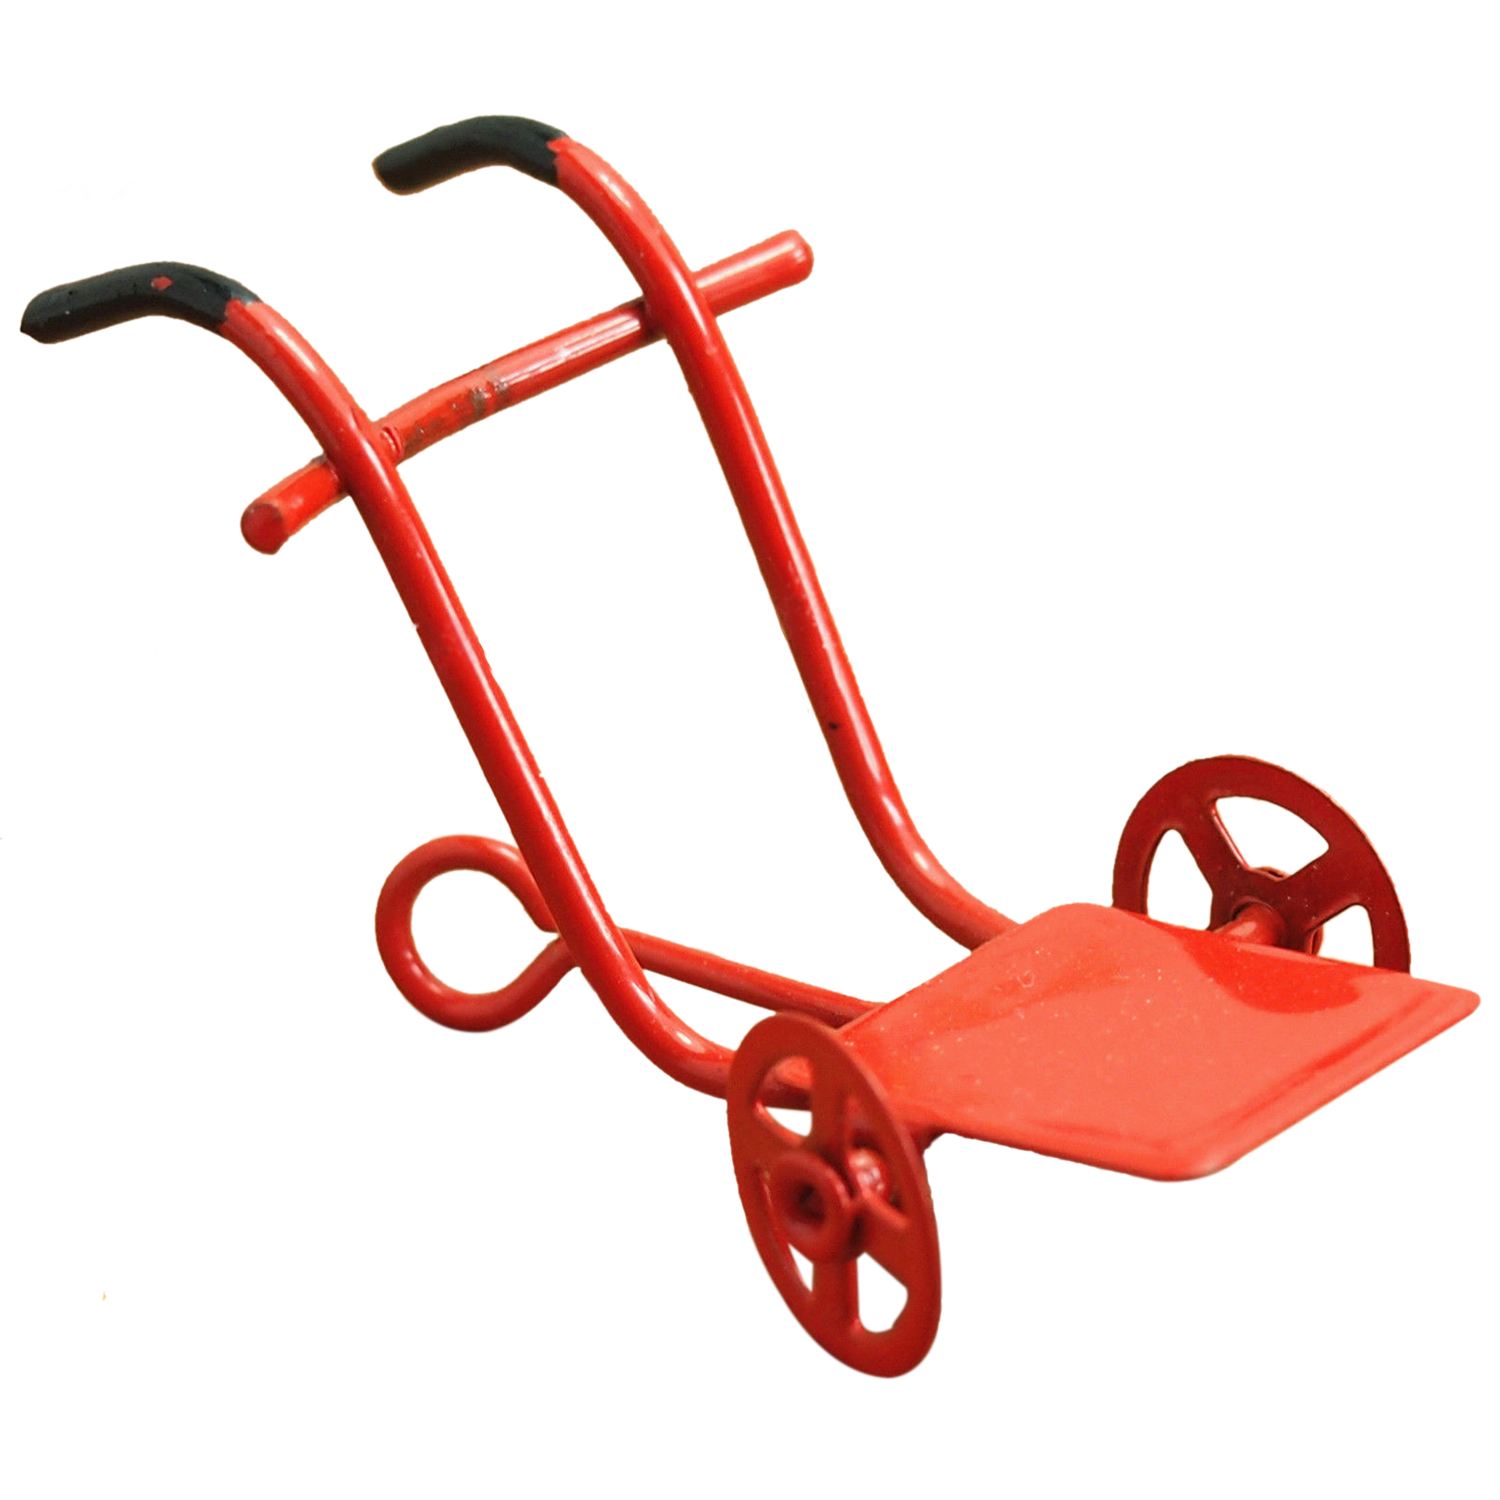 HOT SALE Dollhouse Miniature Garden Toy Small Metal Red Cart Length 5.2cm